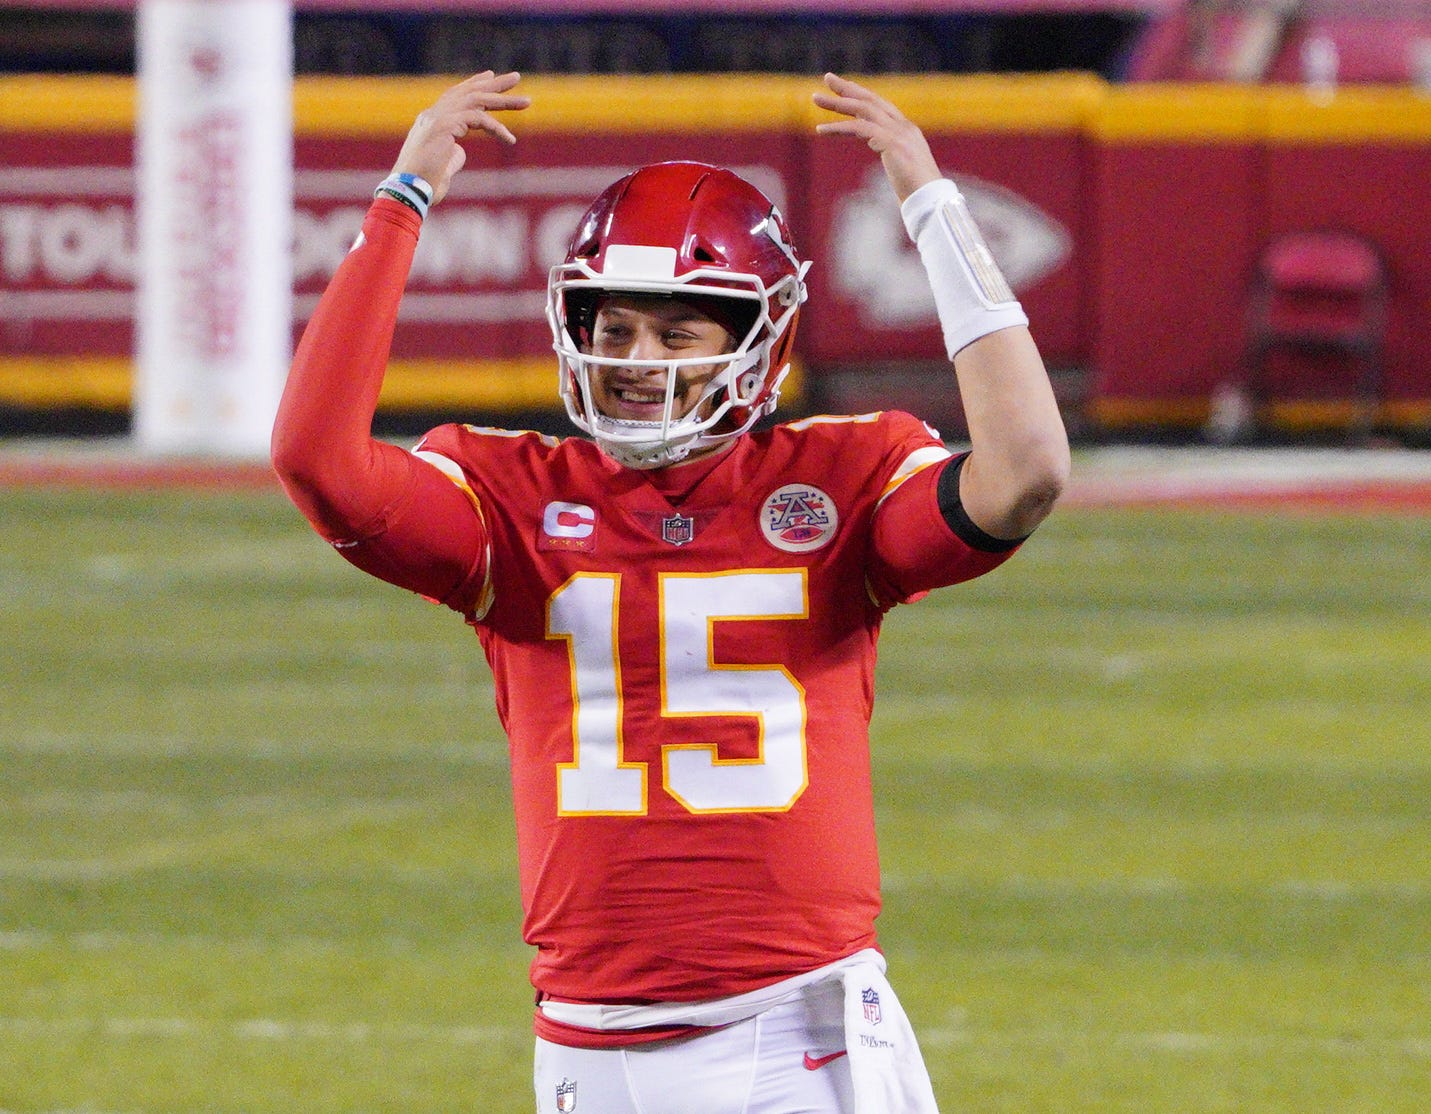 Sights set on perfection: Chiefs QB Patrick Mahomes says 20-0 'only record' he's chasing